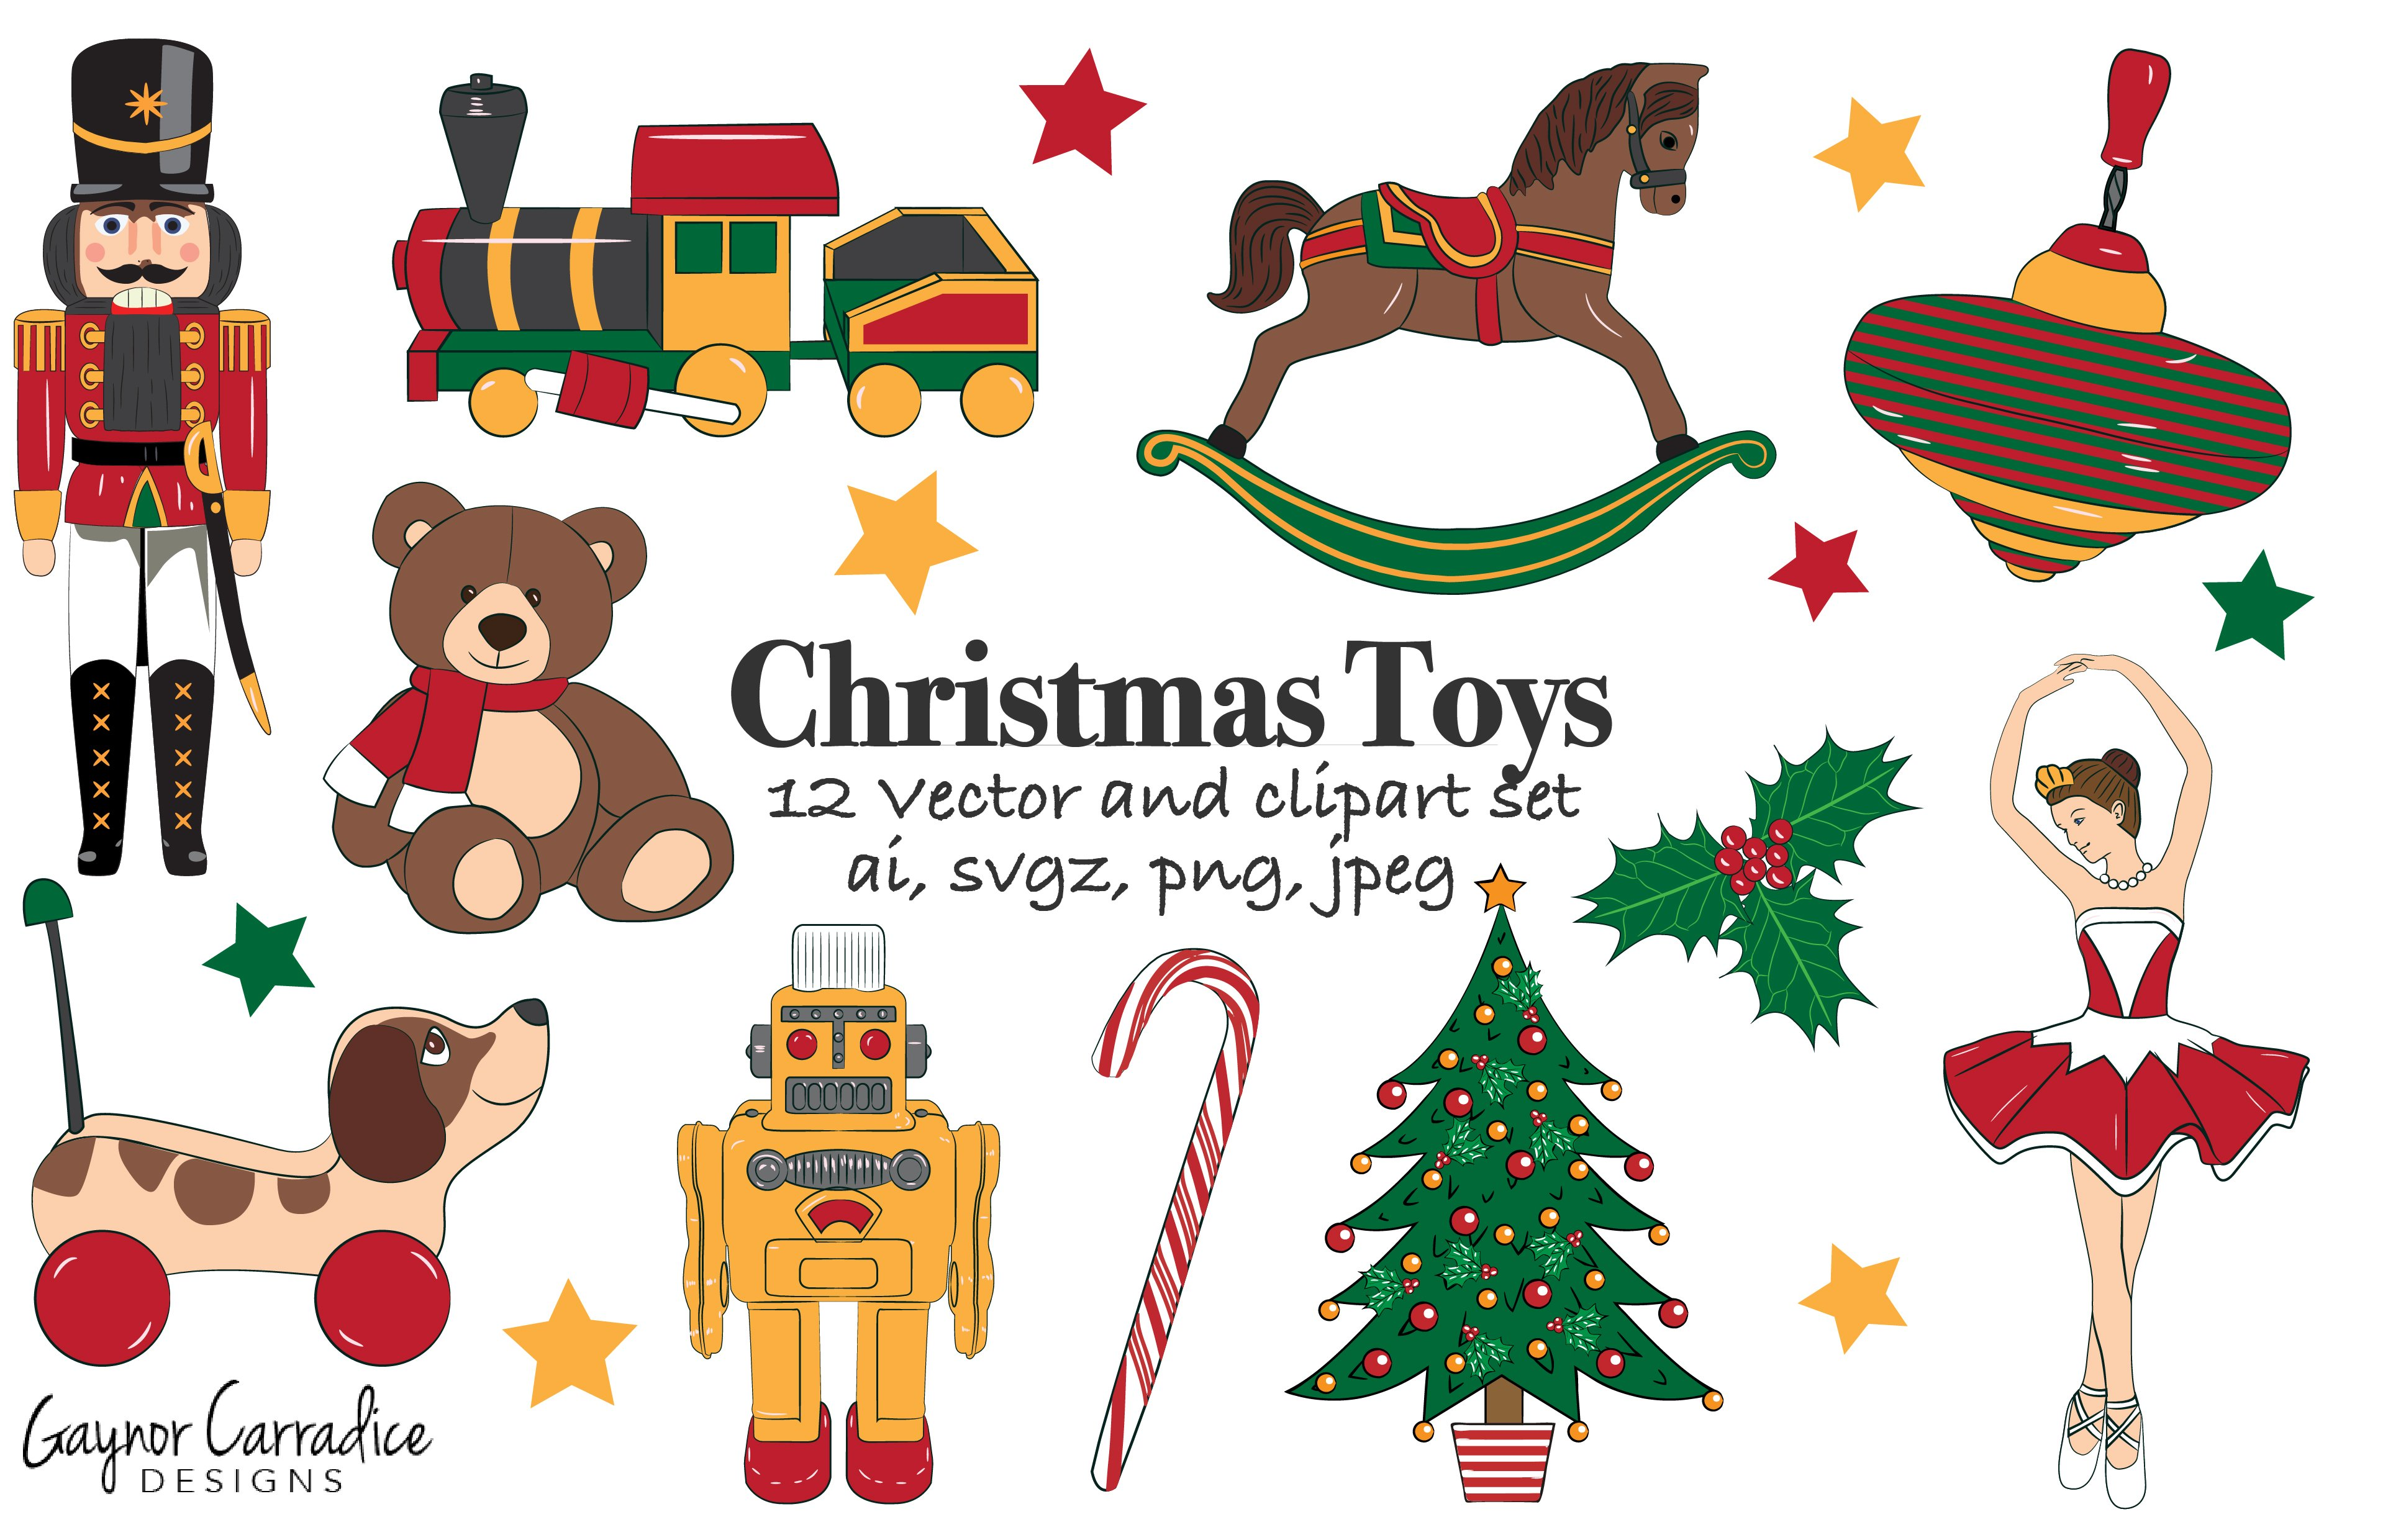 christmas toys vector set clipart illustrations creative market - Christmas Toys